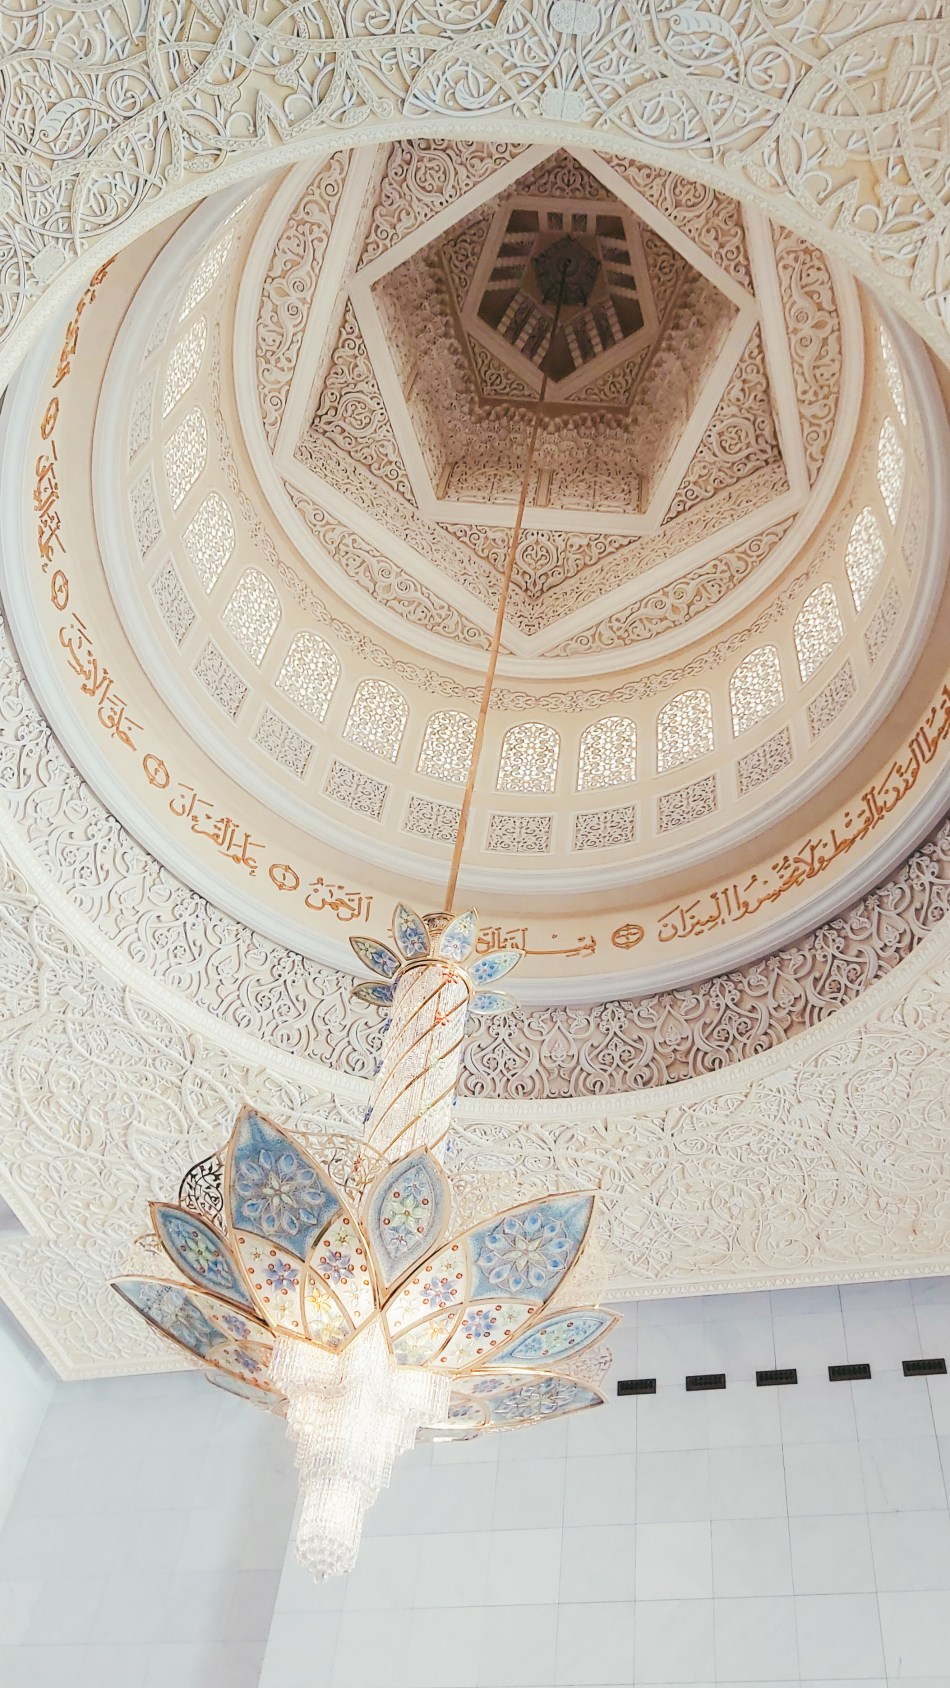 The Swarovski Chandeliers of Sheikh Zayed Grand Mosque